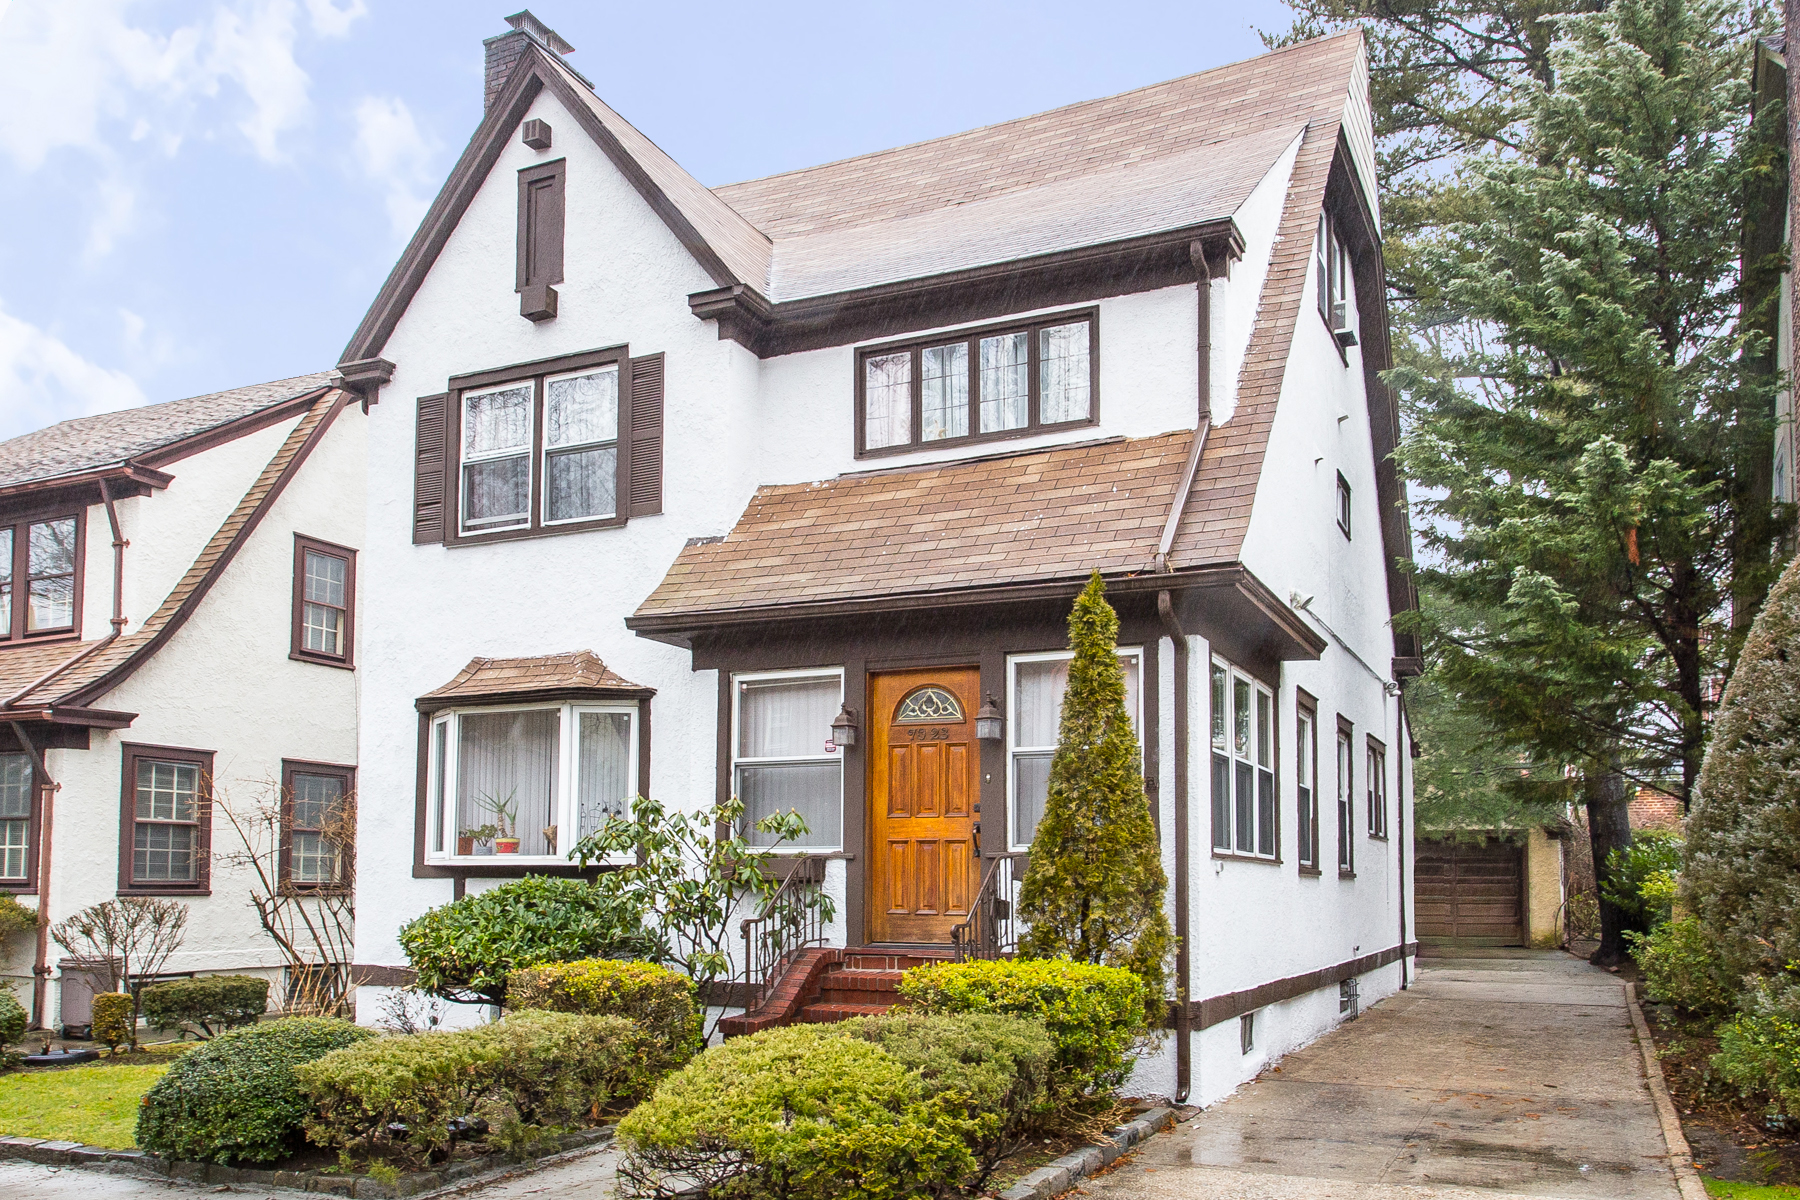 """Single Family Homes for Sale at """"VAN COURT DETACHED BEAUTY"""" 70-23 Juno Street,, Forest Hills Van Court, Forest Hills, New York 11375 United States"""